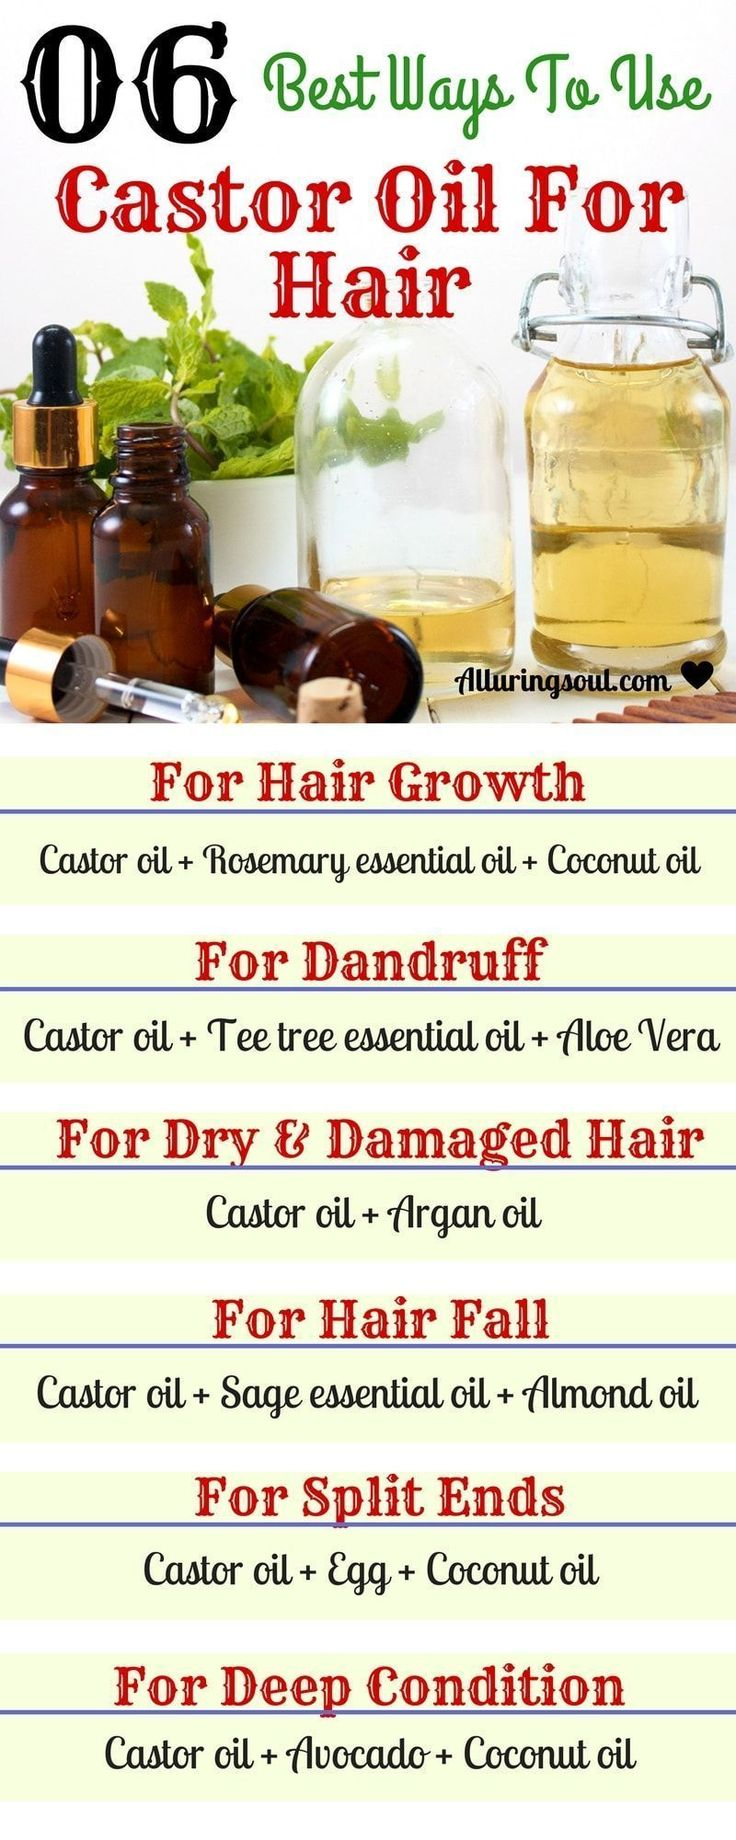 Castor oil is best for hair growth and other hair problems like dry, frizzy hair, split ends and dandruff because of essential nutrients present in it which make hair healthy and strong. #HairLossRemediesNatural #Besthairgrowthtip&products